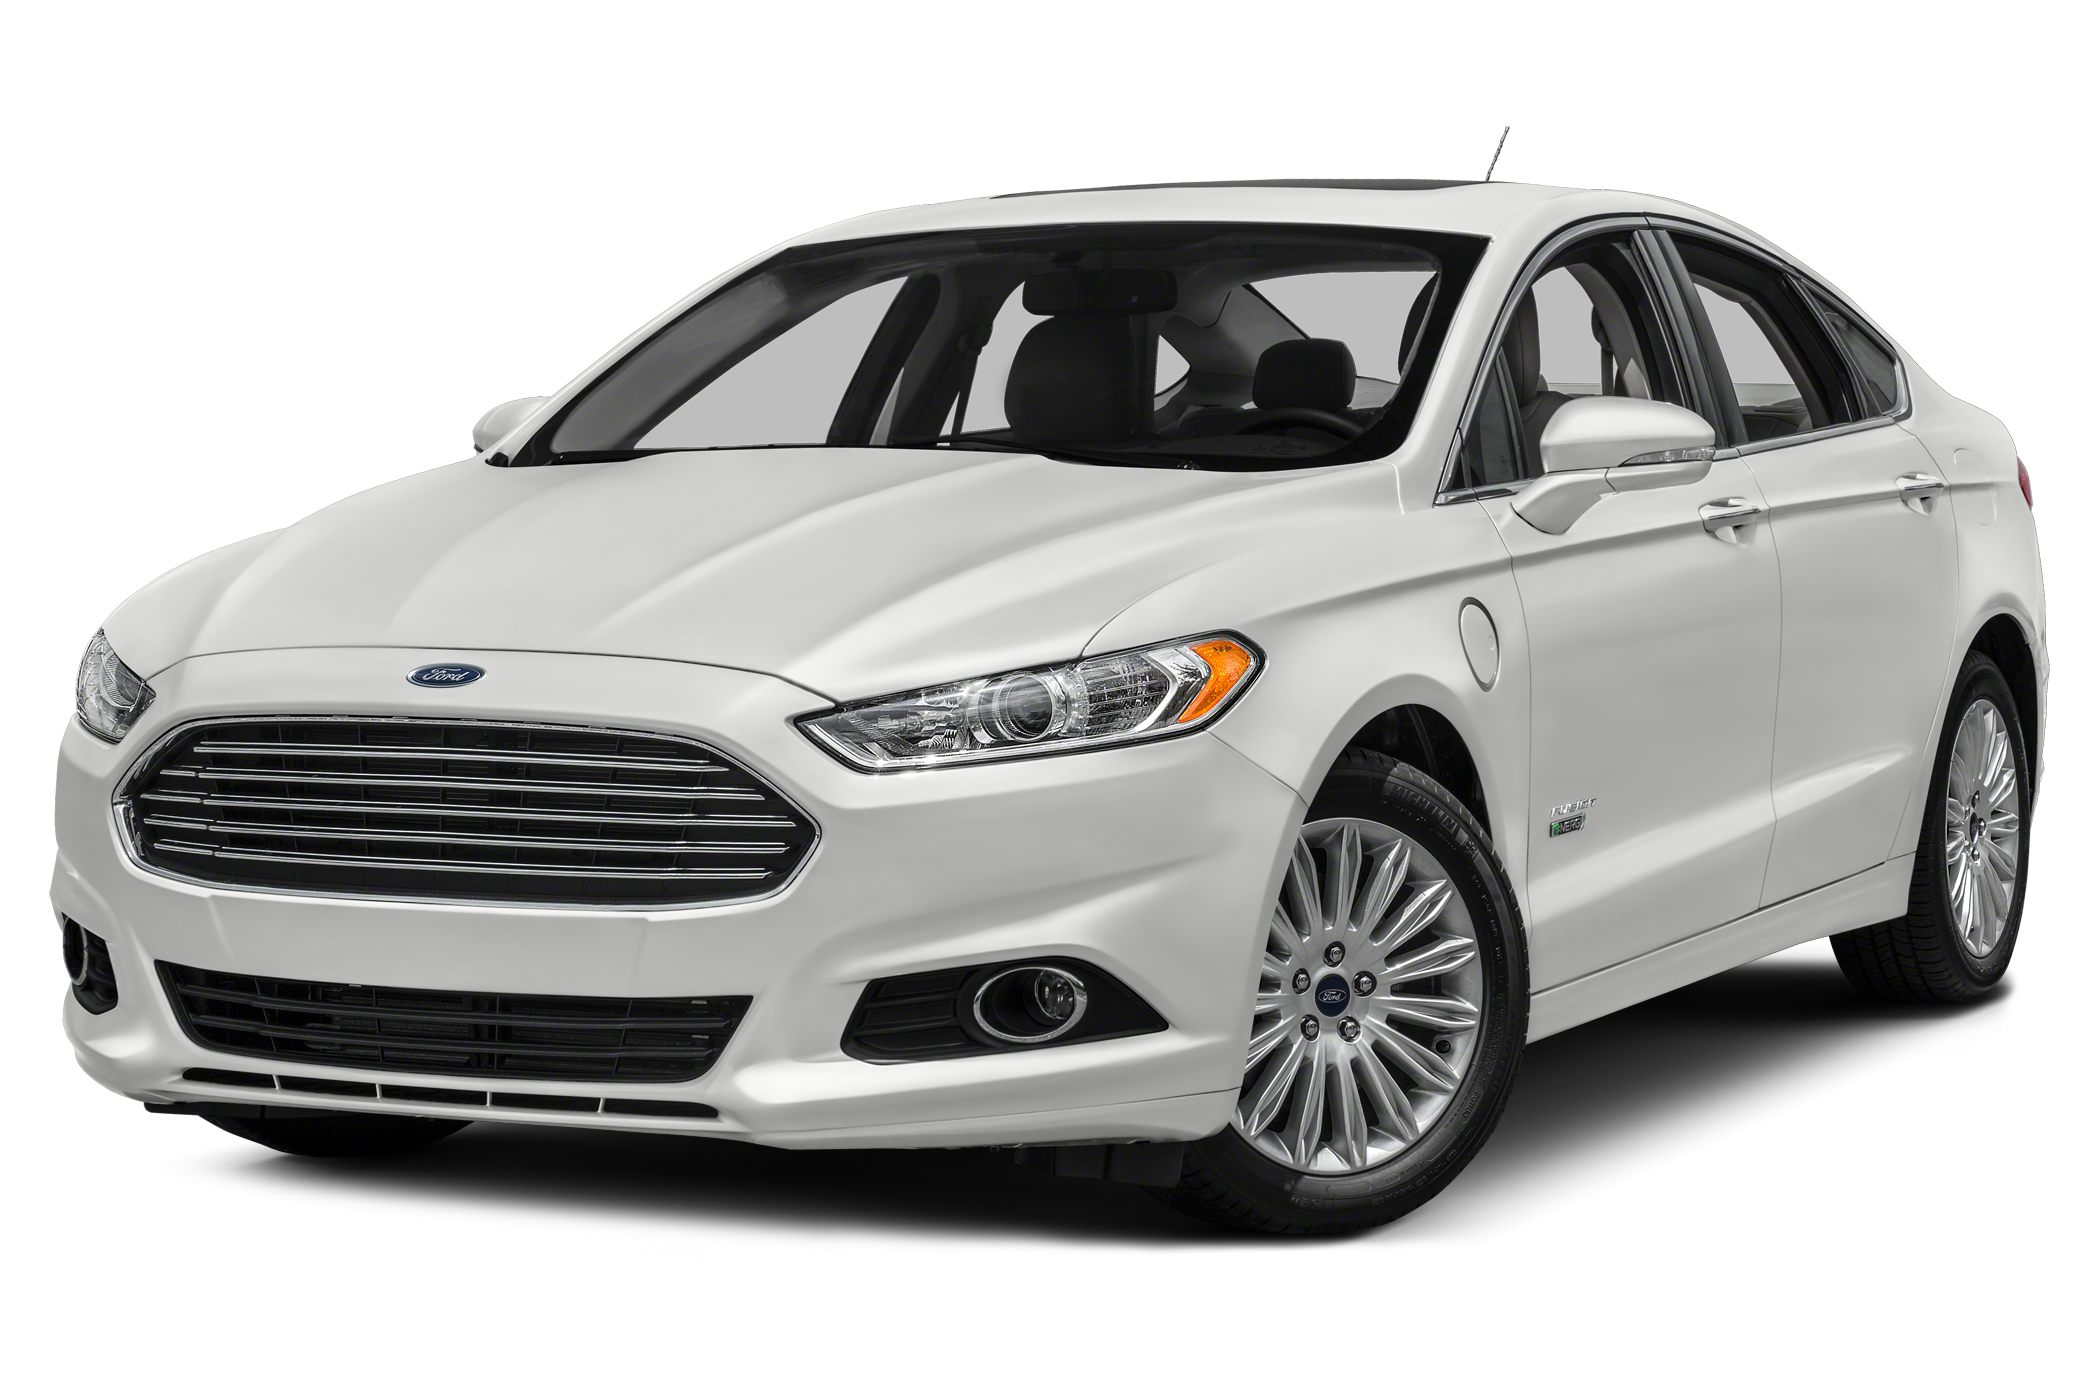 2016 Ford Fusion Energi Anium 4dr Front Wheel Drive Sedan Specs And Prices